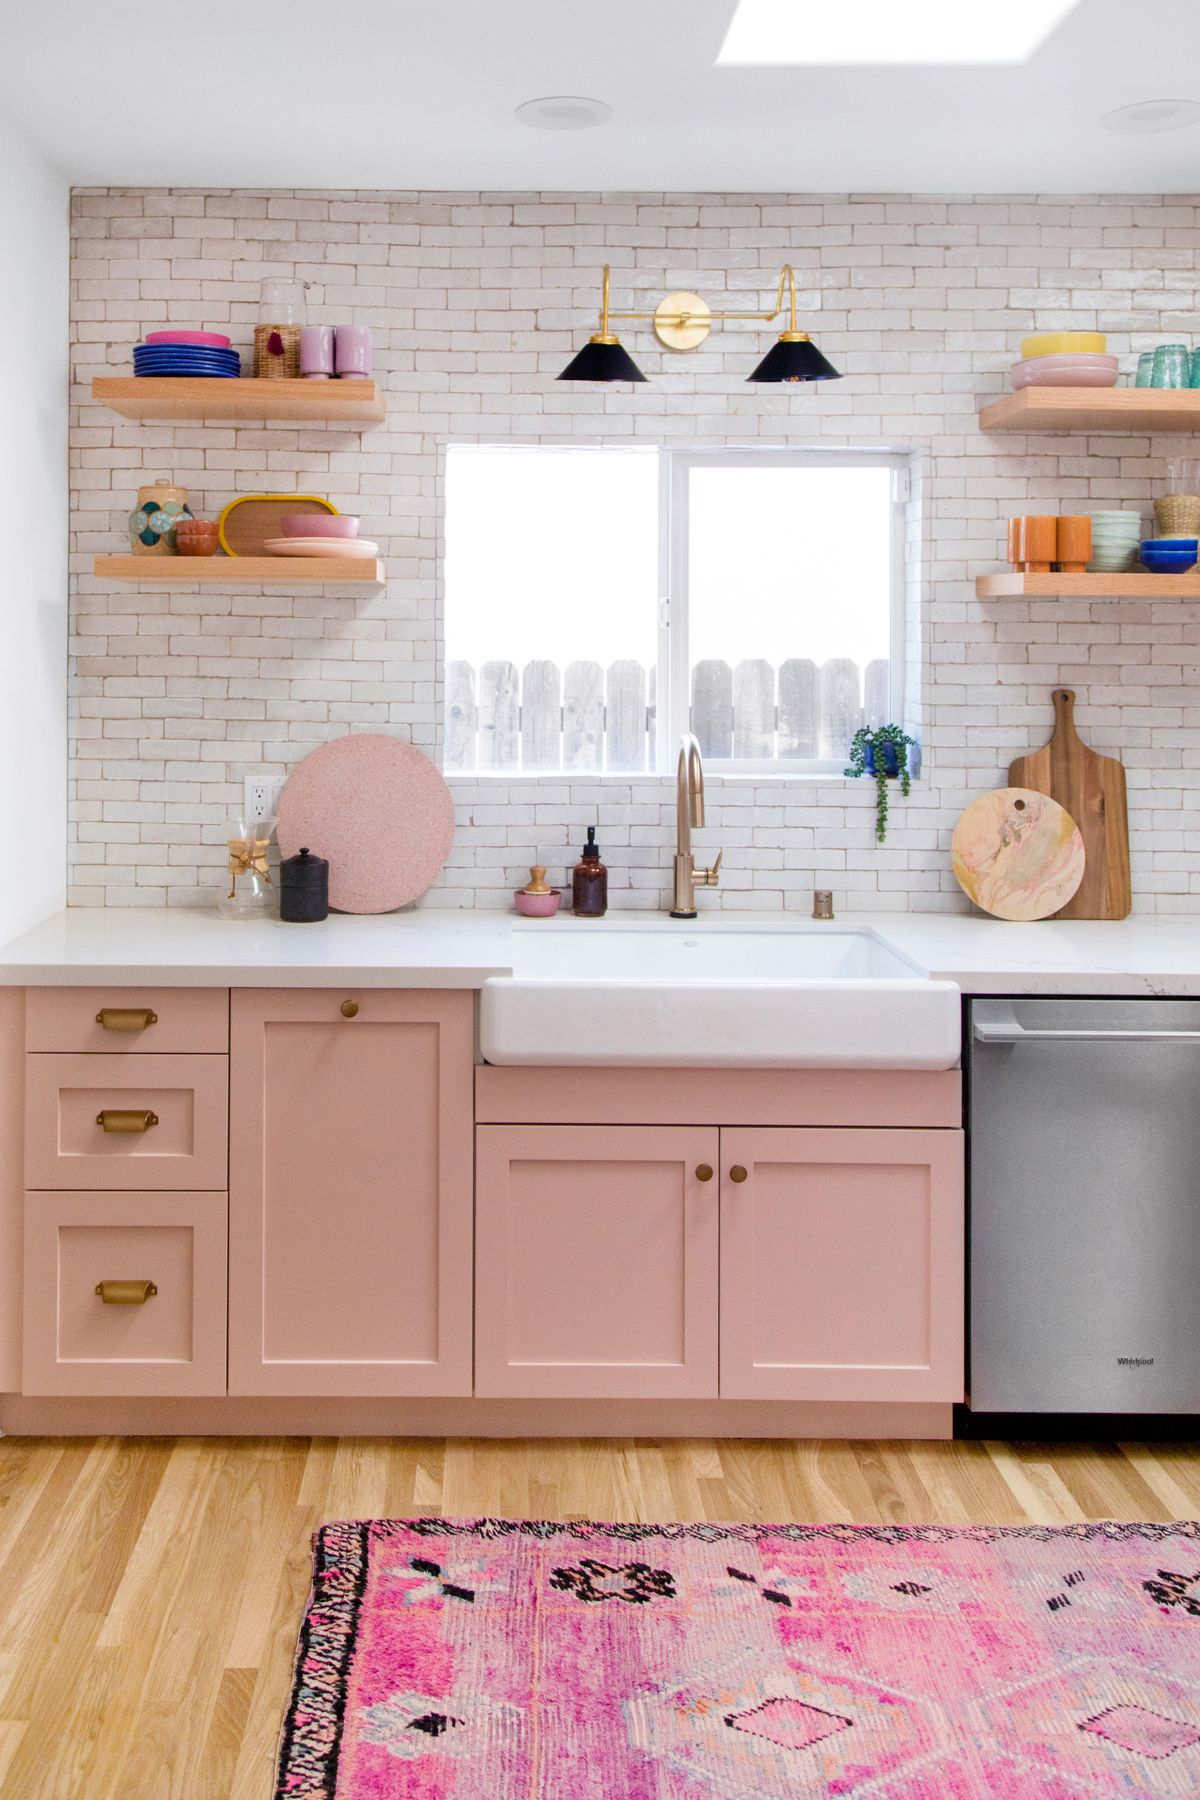 kitchen, wooden floor, pink bottom cabinet, white exposed wall, wooden floating shelves, black scones, white counter top